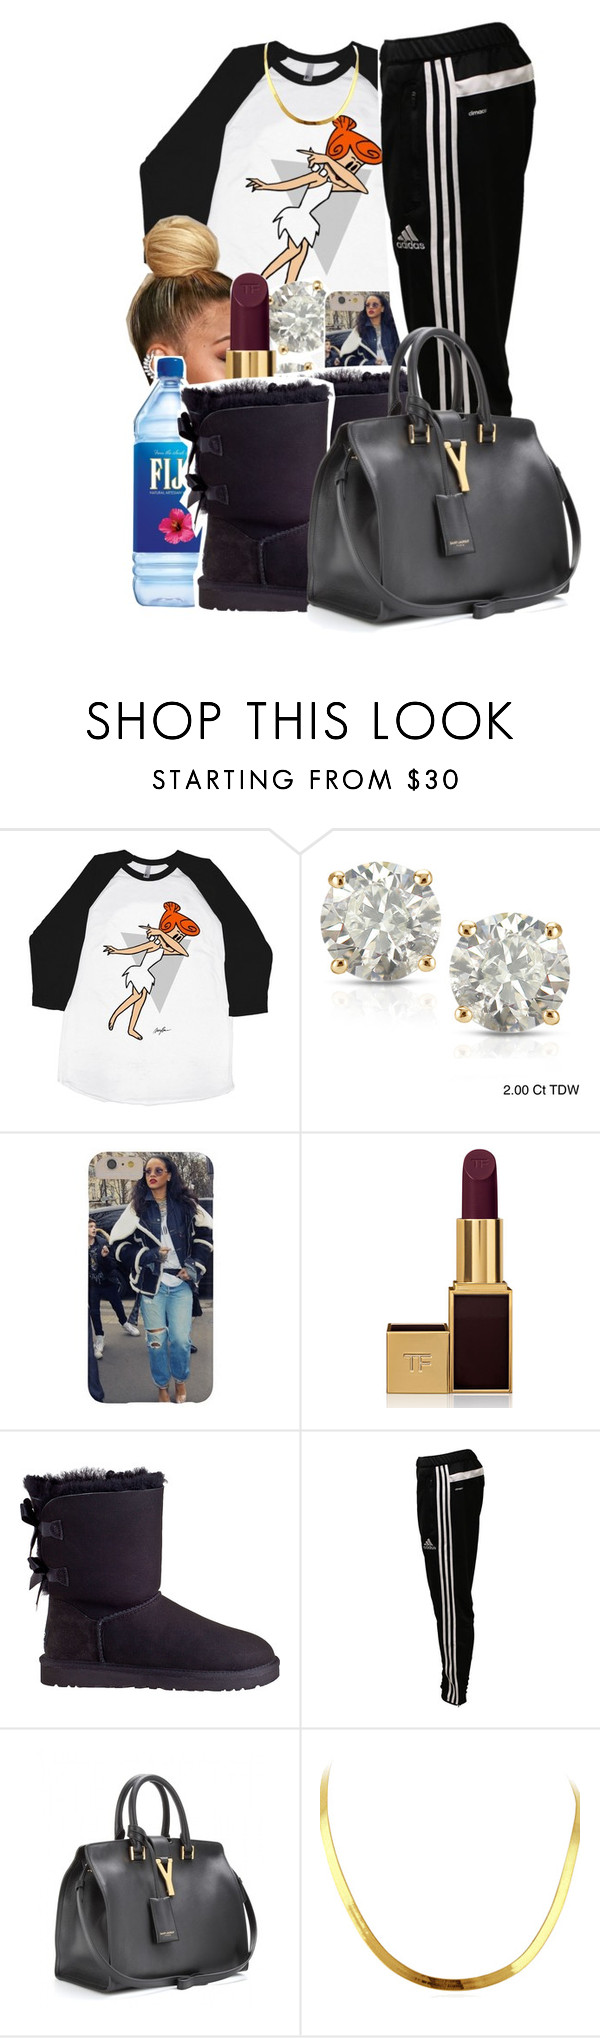 """11/3/15"" by xtaymaxlovesxmisfitx ❤ liked on Polyvore featuring Auriya, Tom Ford, UGG Australia, adidas and Yves Saint Laurent"